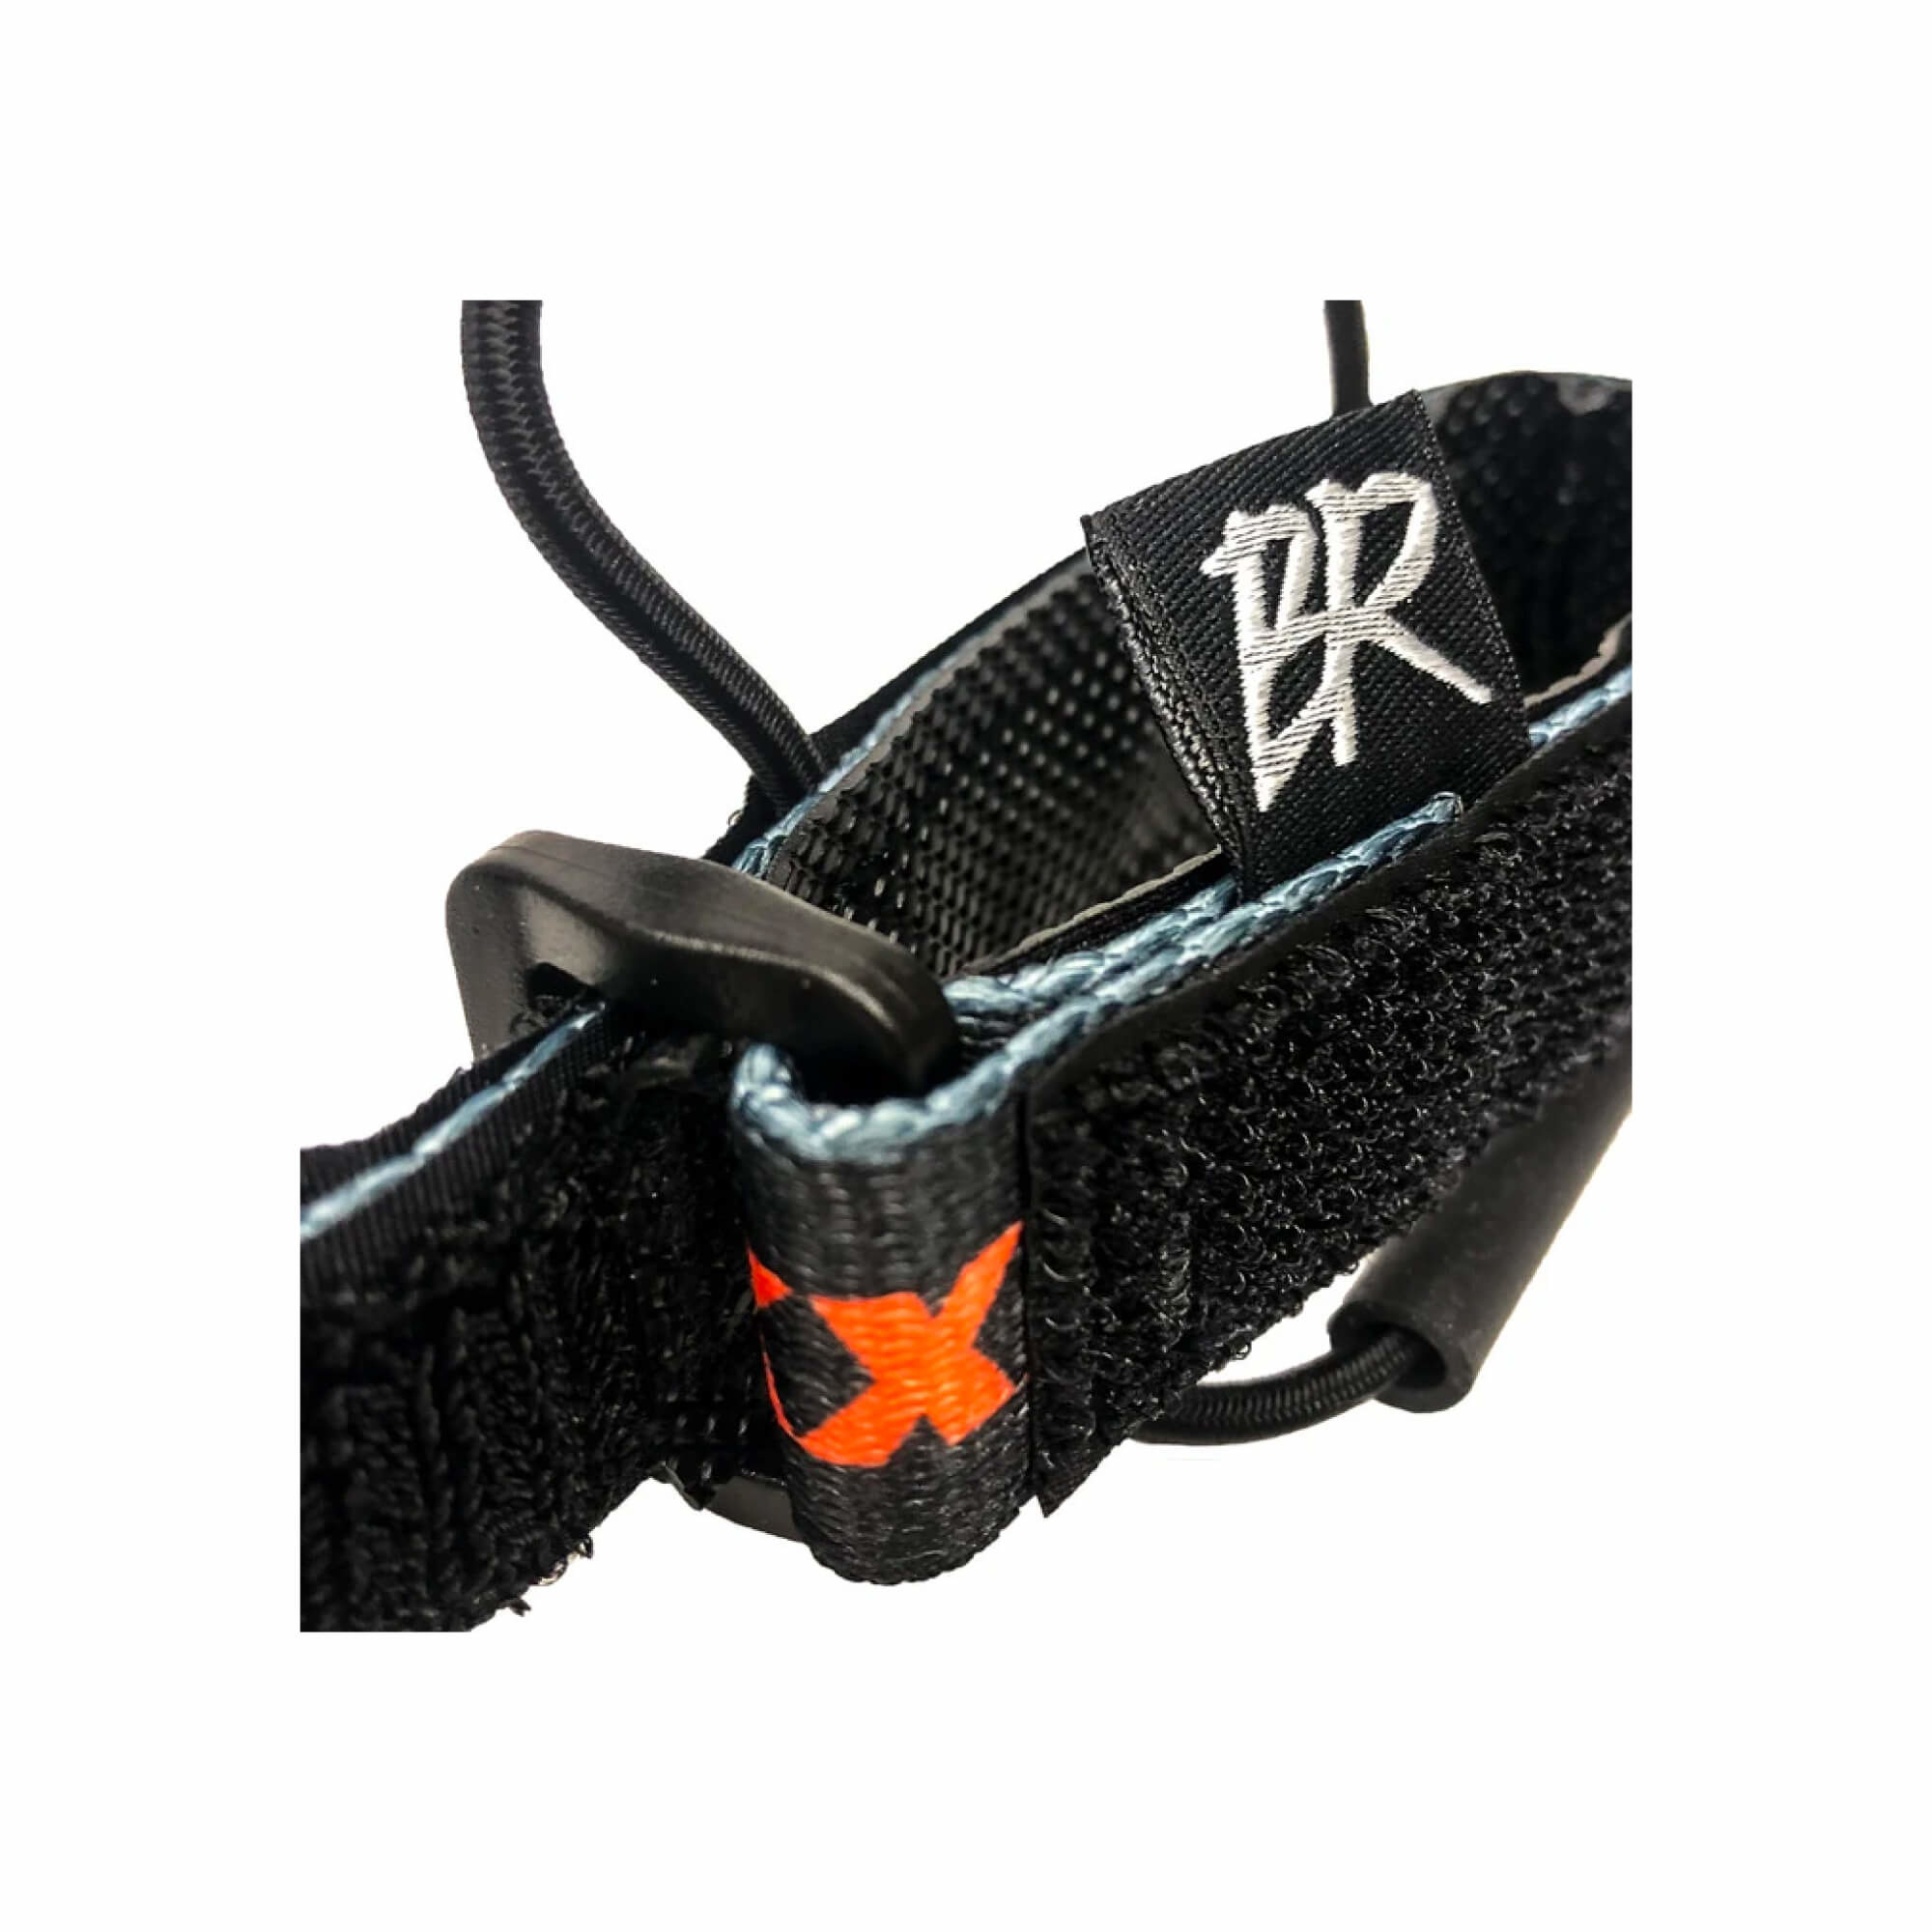 Backcountry Research Strap Mutherload Black Orange-2